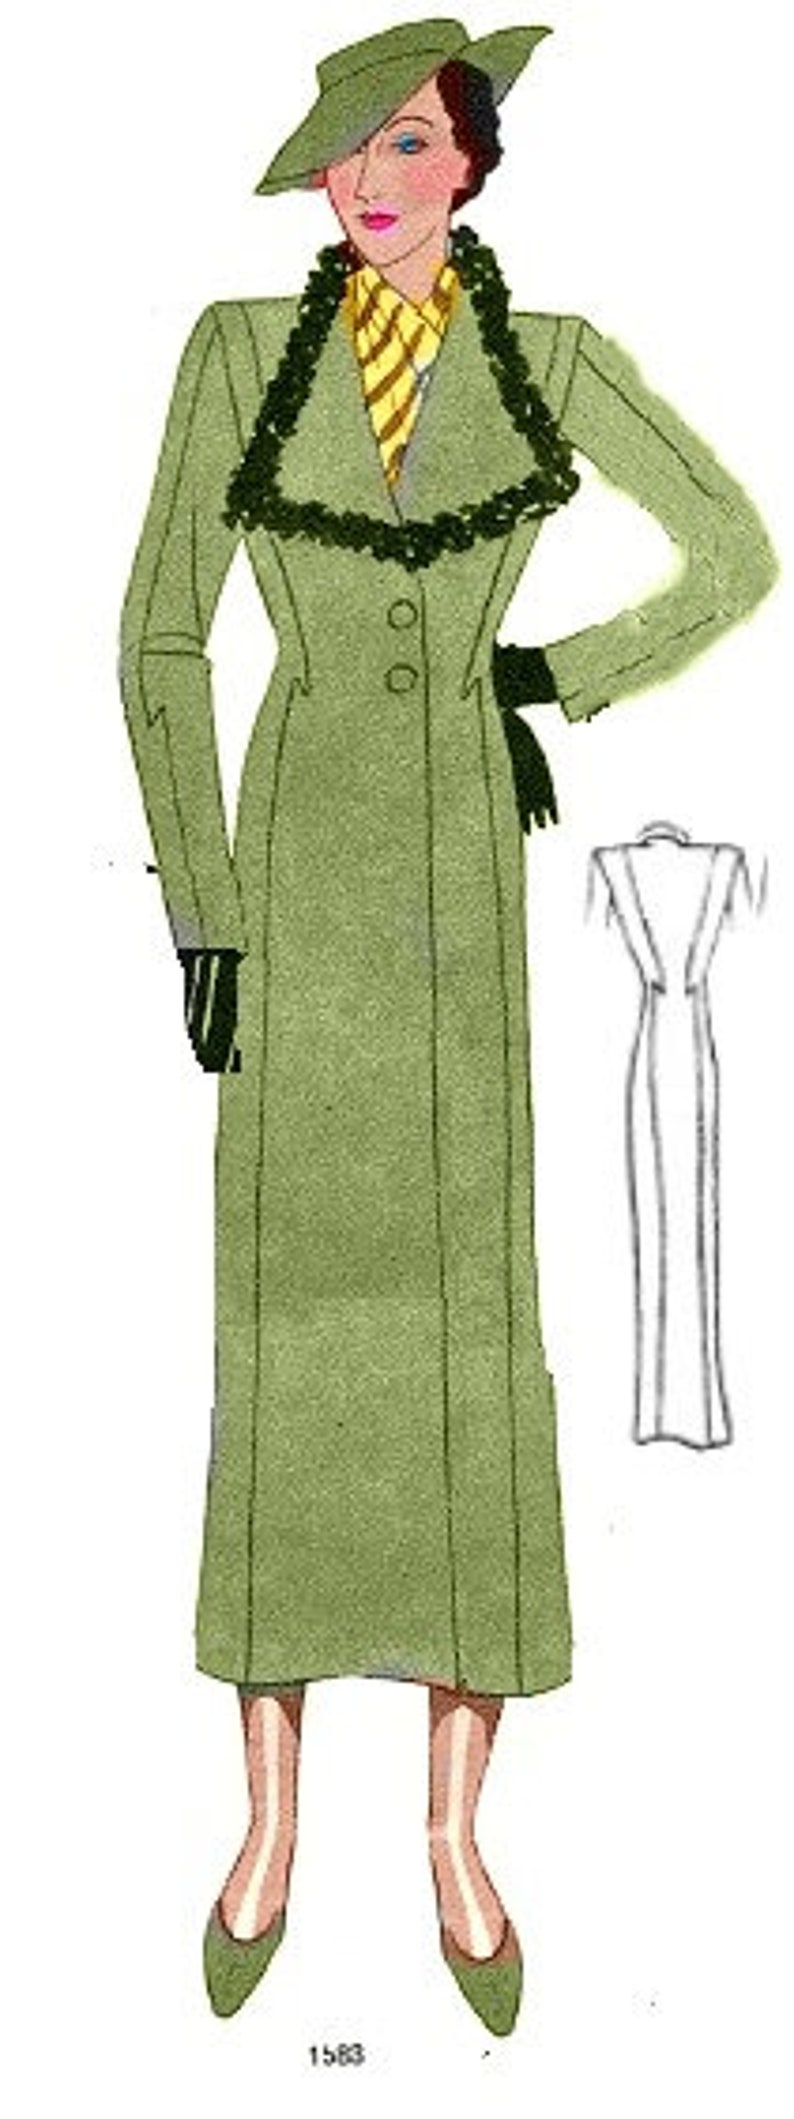 1930s House Dresses Plus Size (or any size) Vintage 1934 Coat Jacket Sewing Pattern - PDF - Pattern 1583 Concetta 1930s 30s Patterns Instant Download $8.35 AT vintagedancer.com